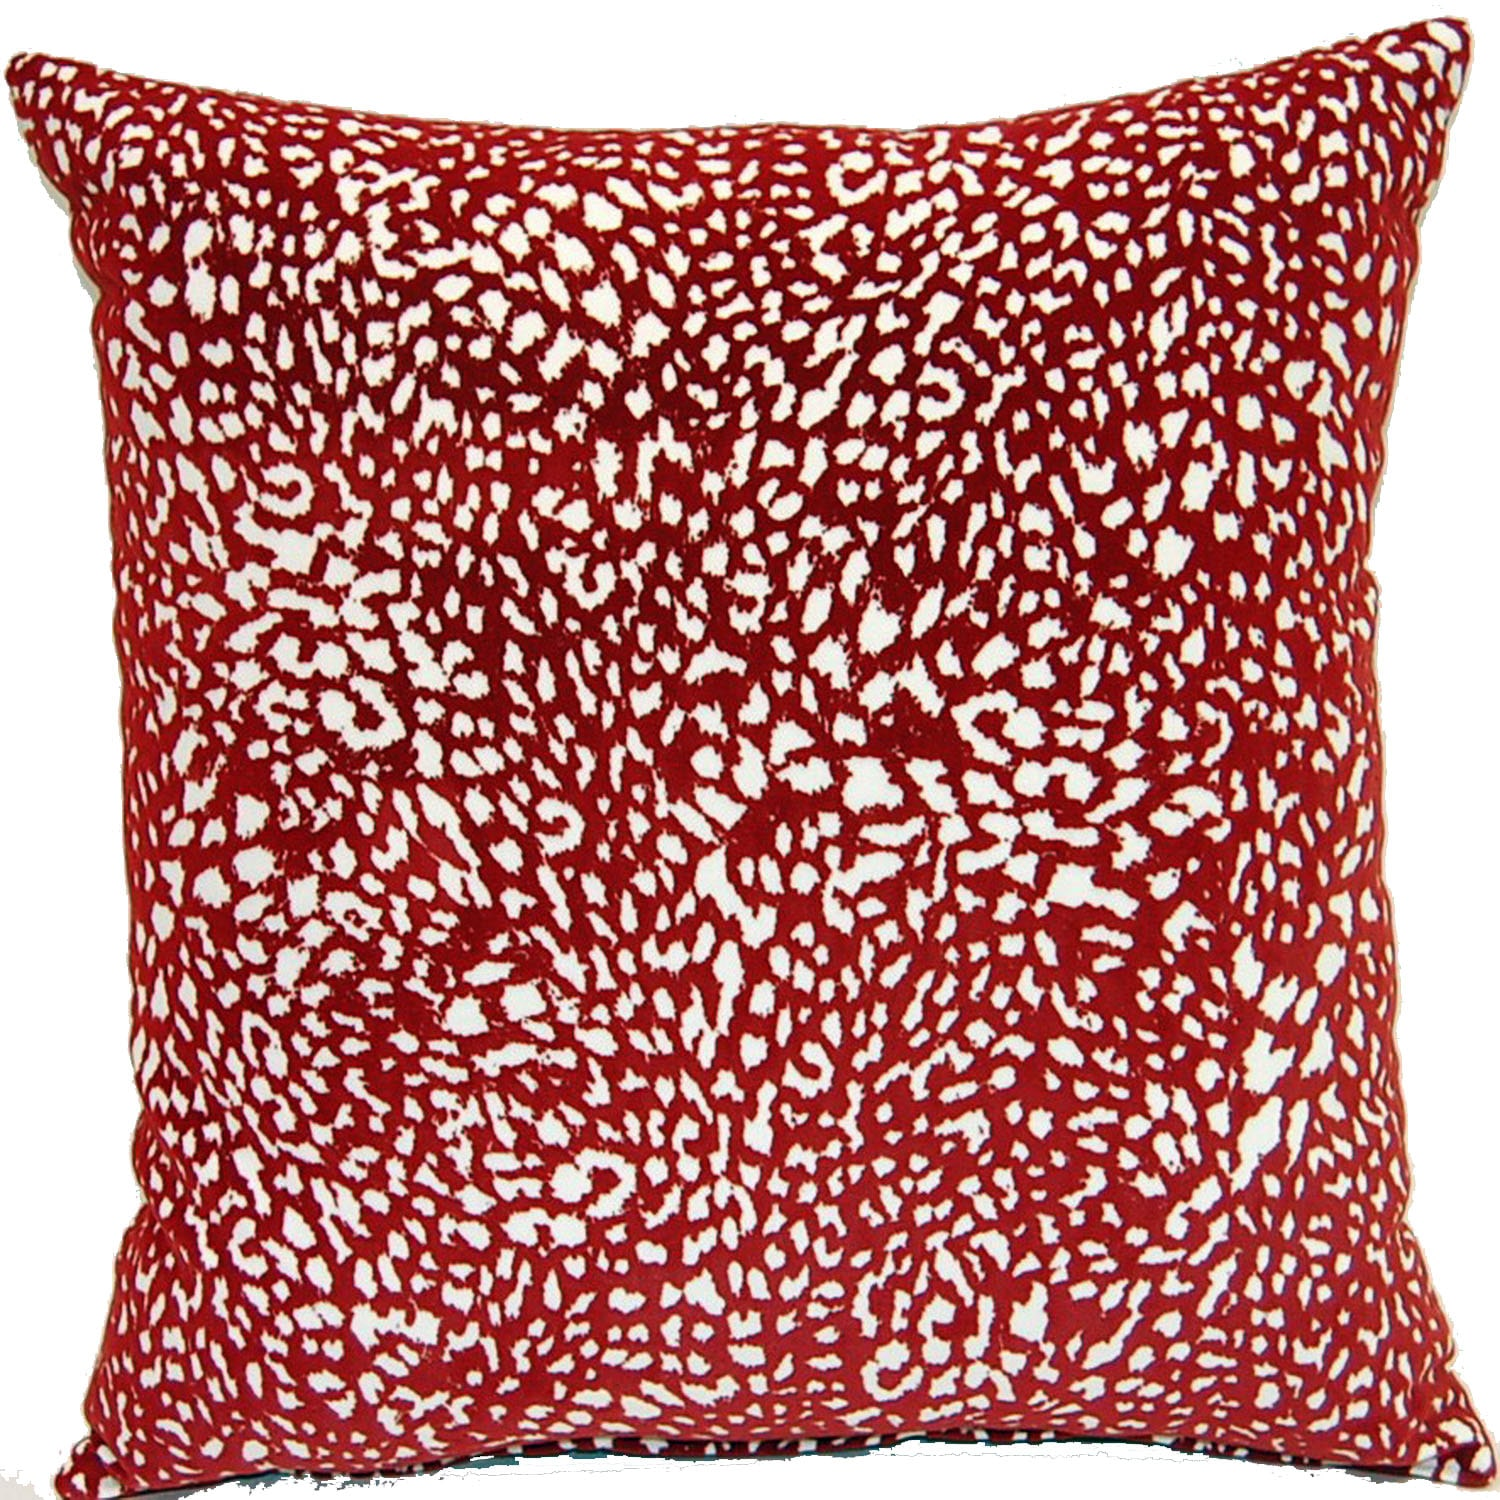 Fox Hill Trading Jumanji Red 17-inch Pillows (Set of 2)